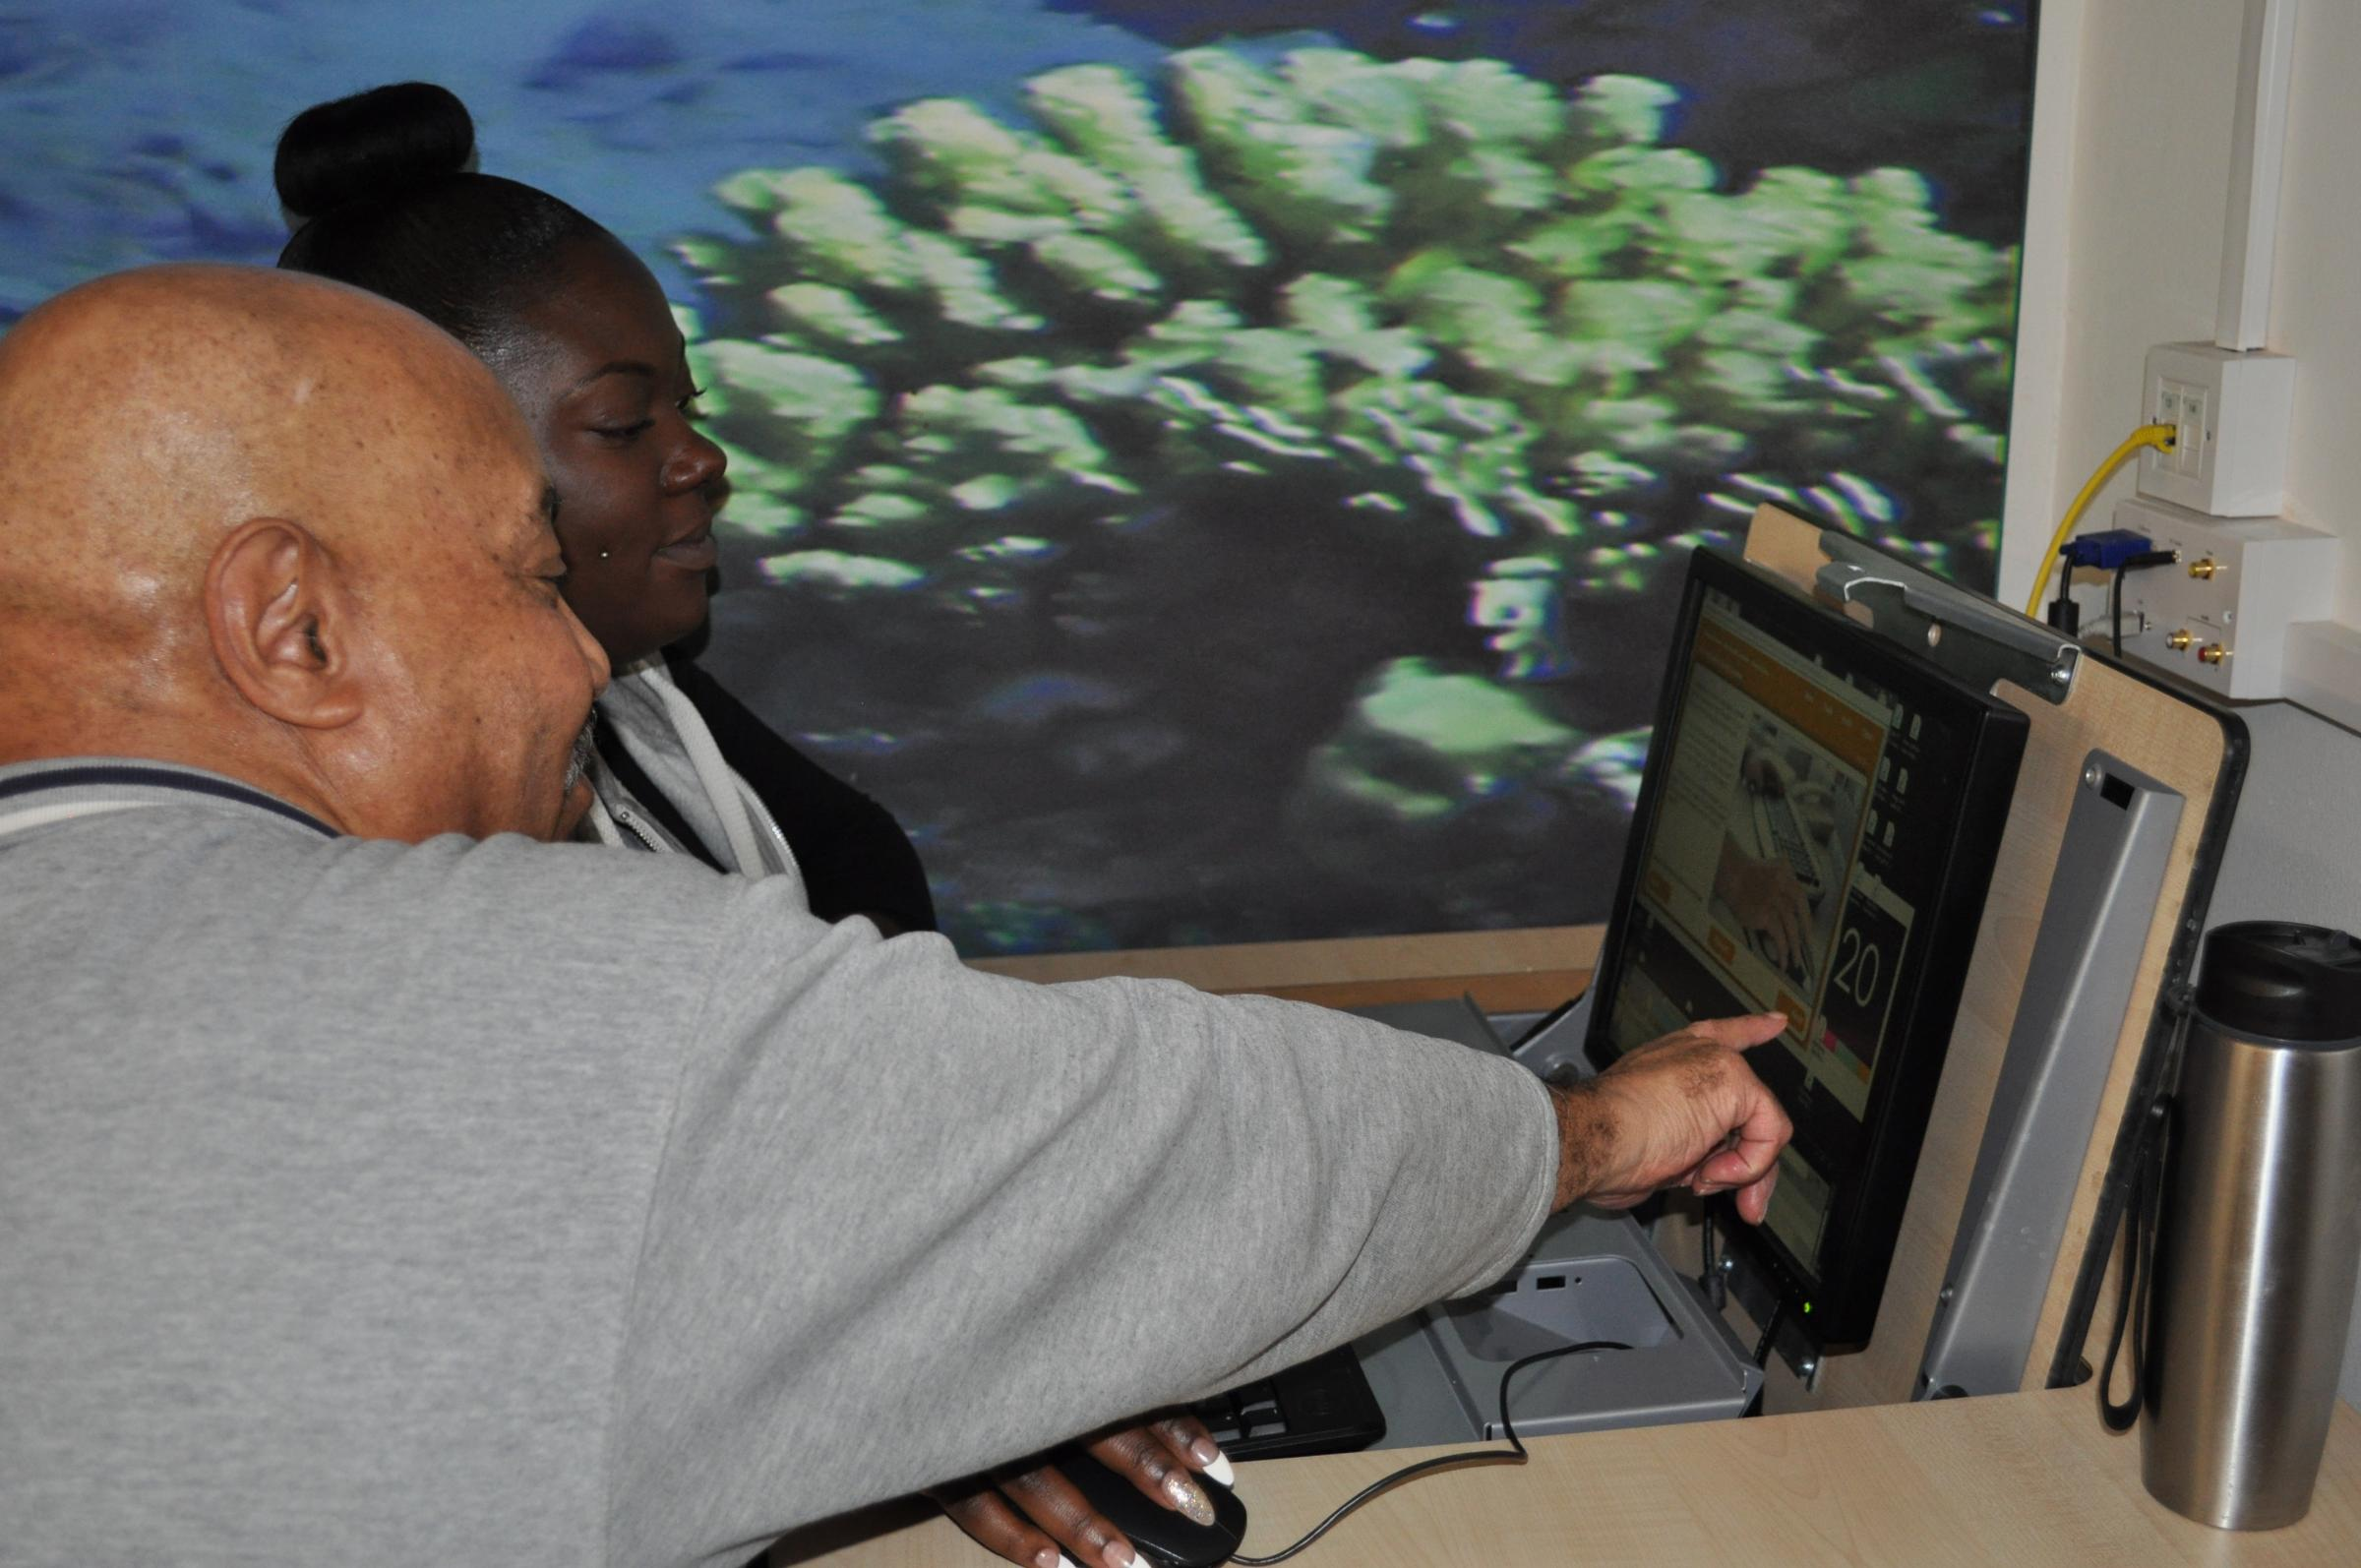 Volunteer Vanessa Logan shows Tyrone Clarke how to use a computer